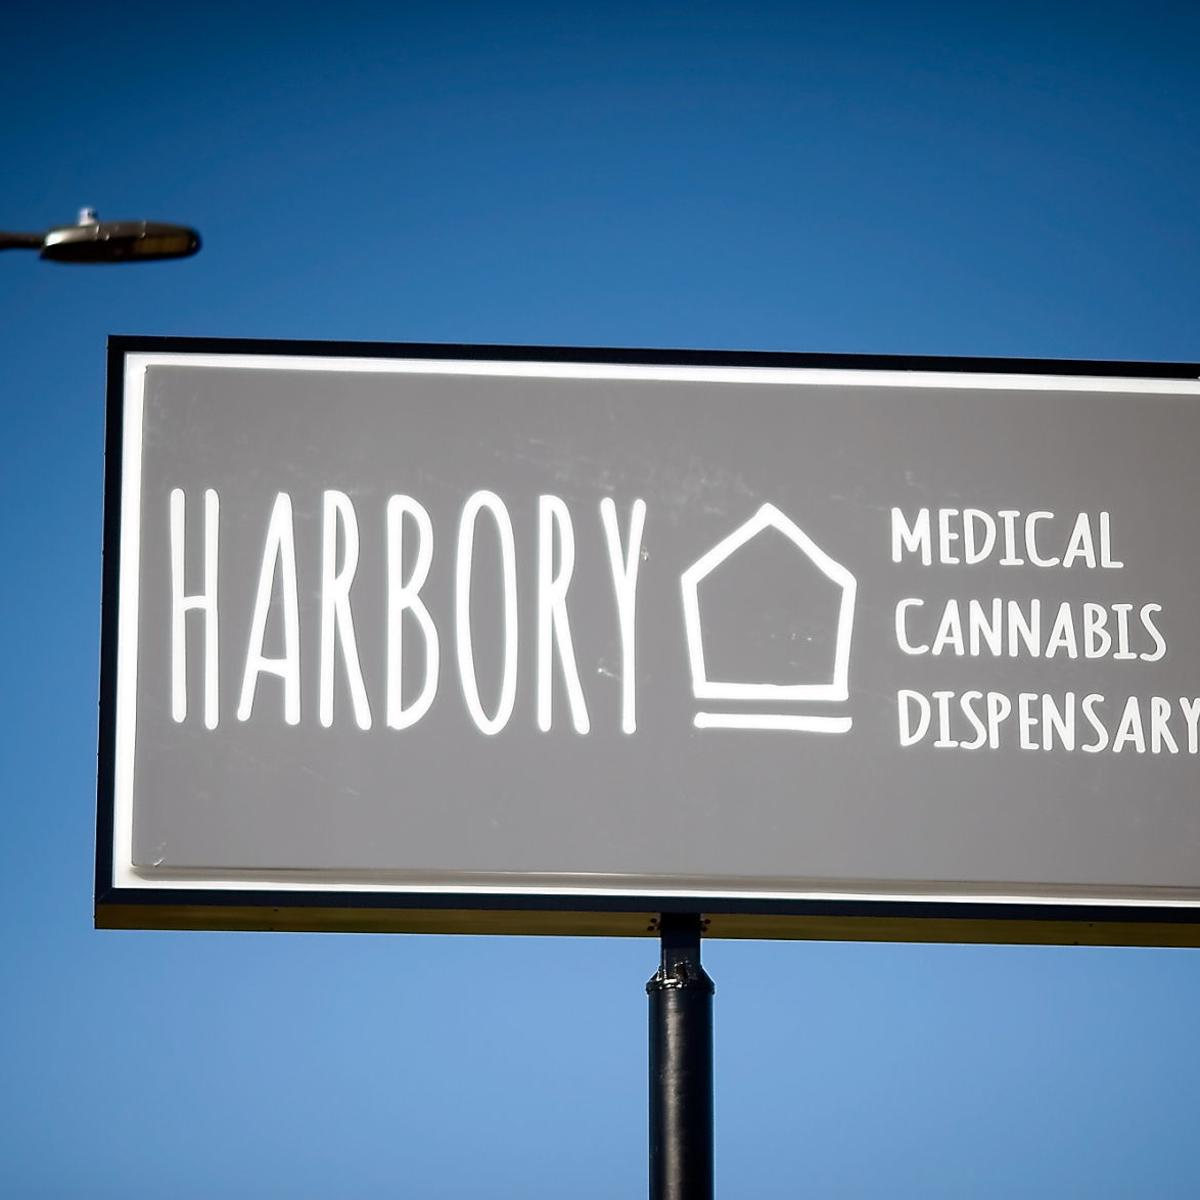 The Harbory near Marion receives state license for